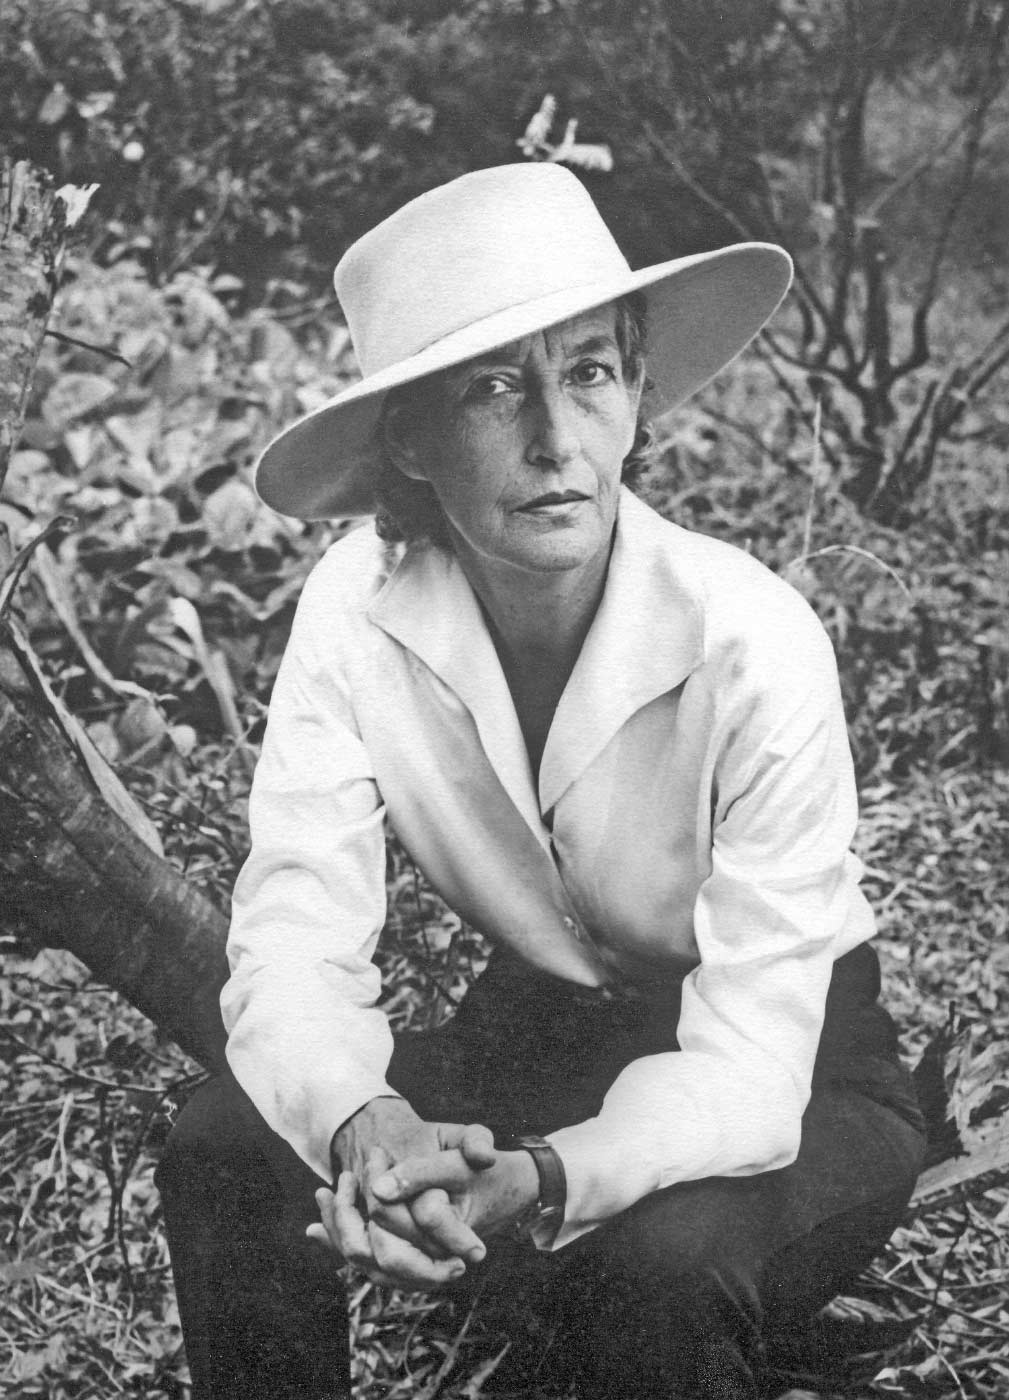 Black and white portrait of a woman sitting in bushland and wearing a wide-brimmed hat, shirt and trousers. - click to view larger image